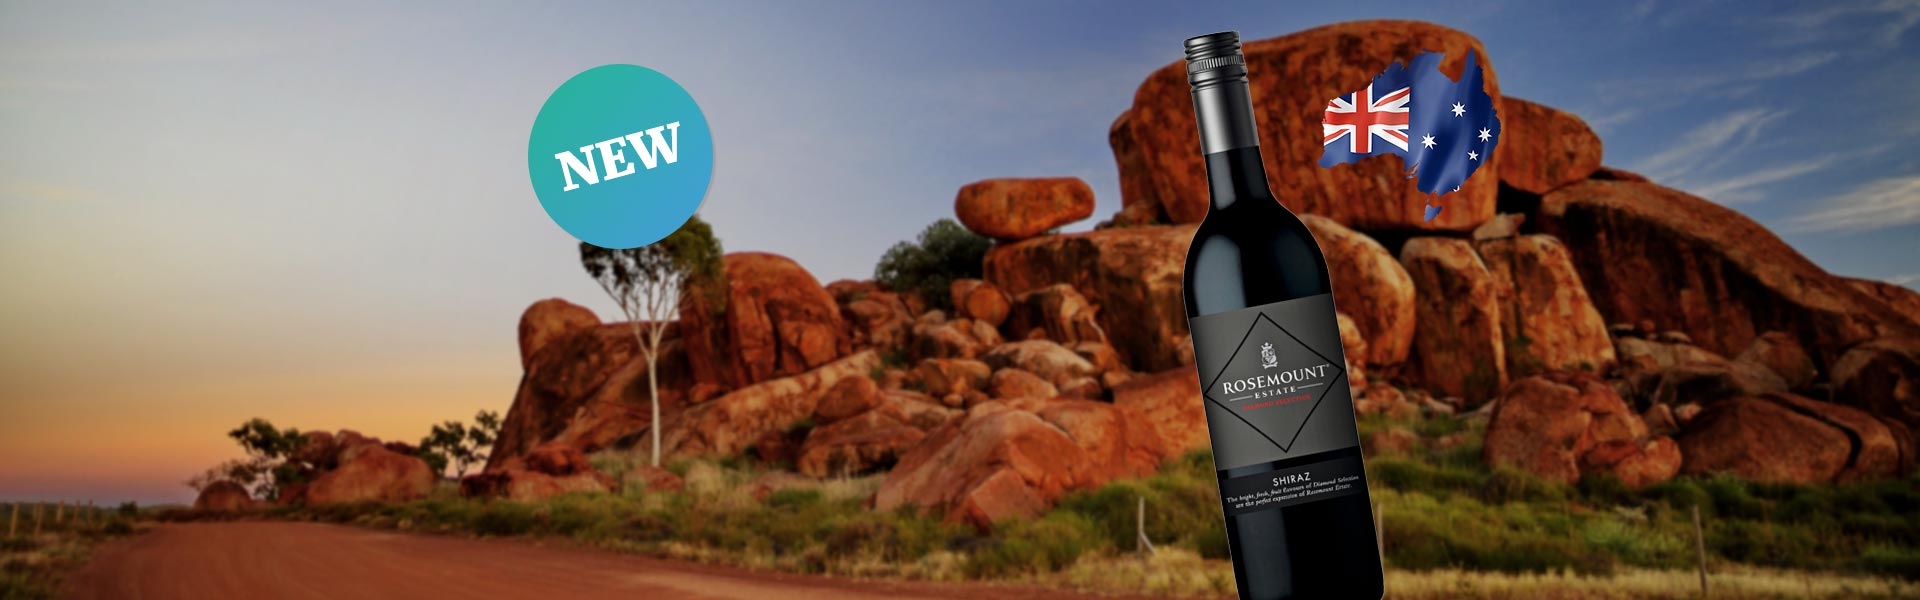 Shiraz Diamon Selection